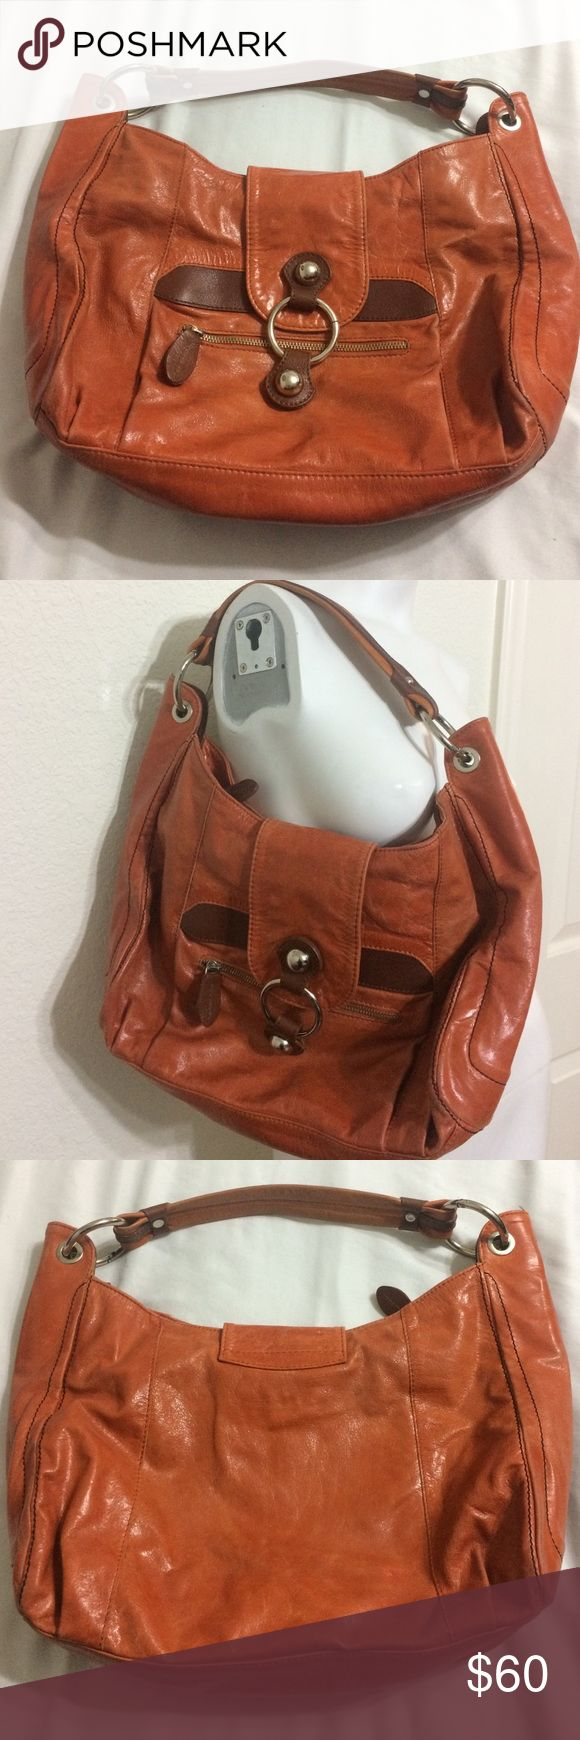 ❗weekend sale ❗was $28 Tano Leather Hobo Handbag Beautiful orange/brown leather handbag, slightly worn, silver tone hardware, wrinkling effect on the leather to look aged. Tano Bags Hobos